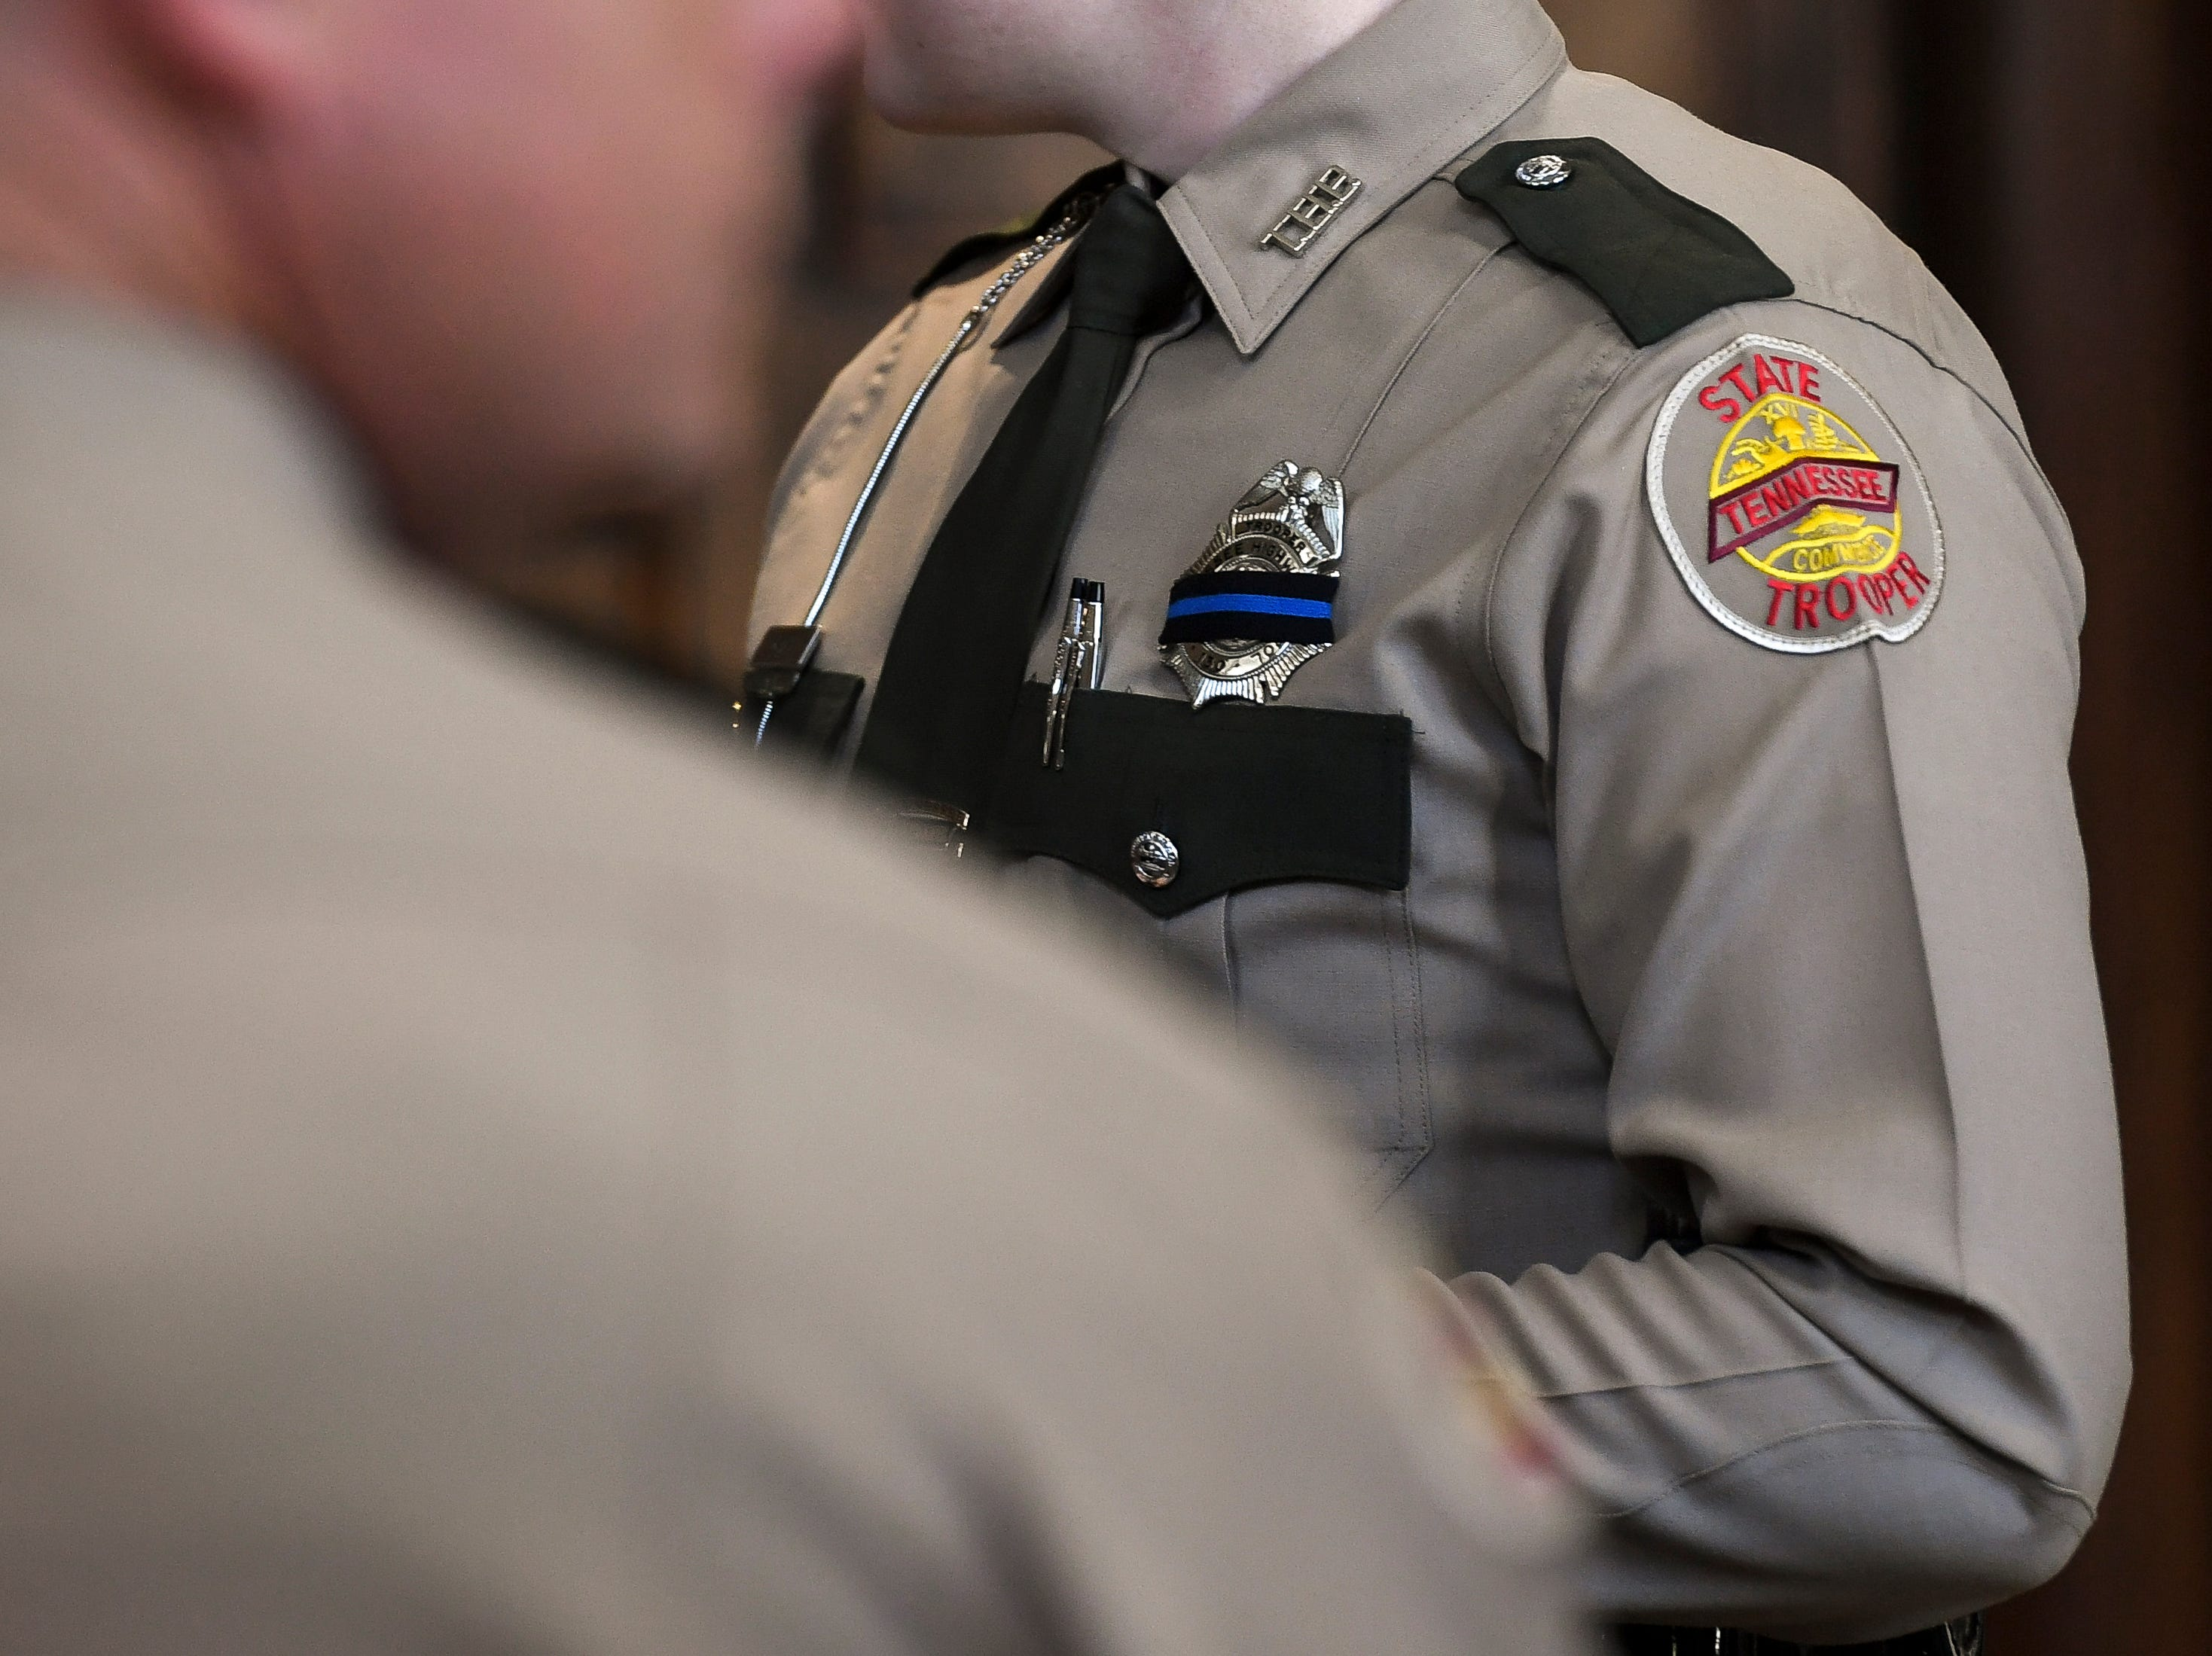 A Tennessee State Trooper wears a mourning band on her badge before the funeral service for Tennessee State Trooper Matthew Gatti at West Jackson Baptist Church in Jackson, Tenn., Monday, May 13, 2019. Gatti died in the line of duty in an accident while responding to a car fire on I-40 in Madison County on May 6.